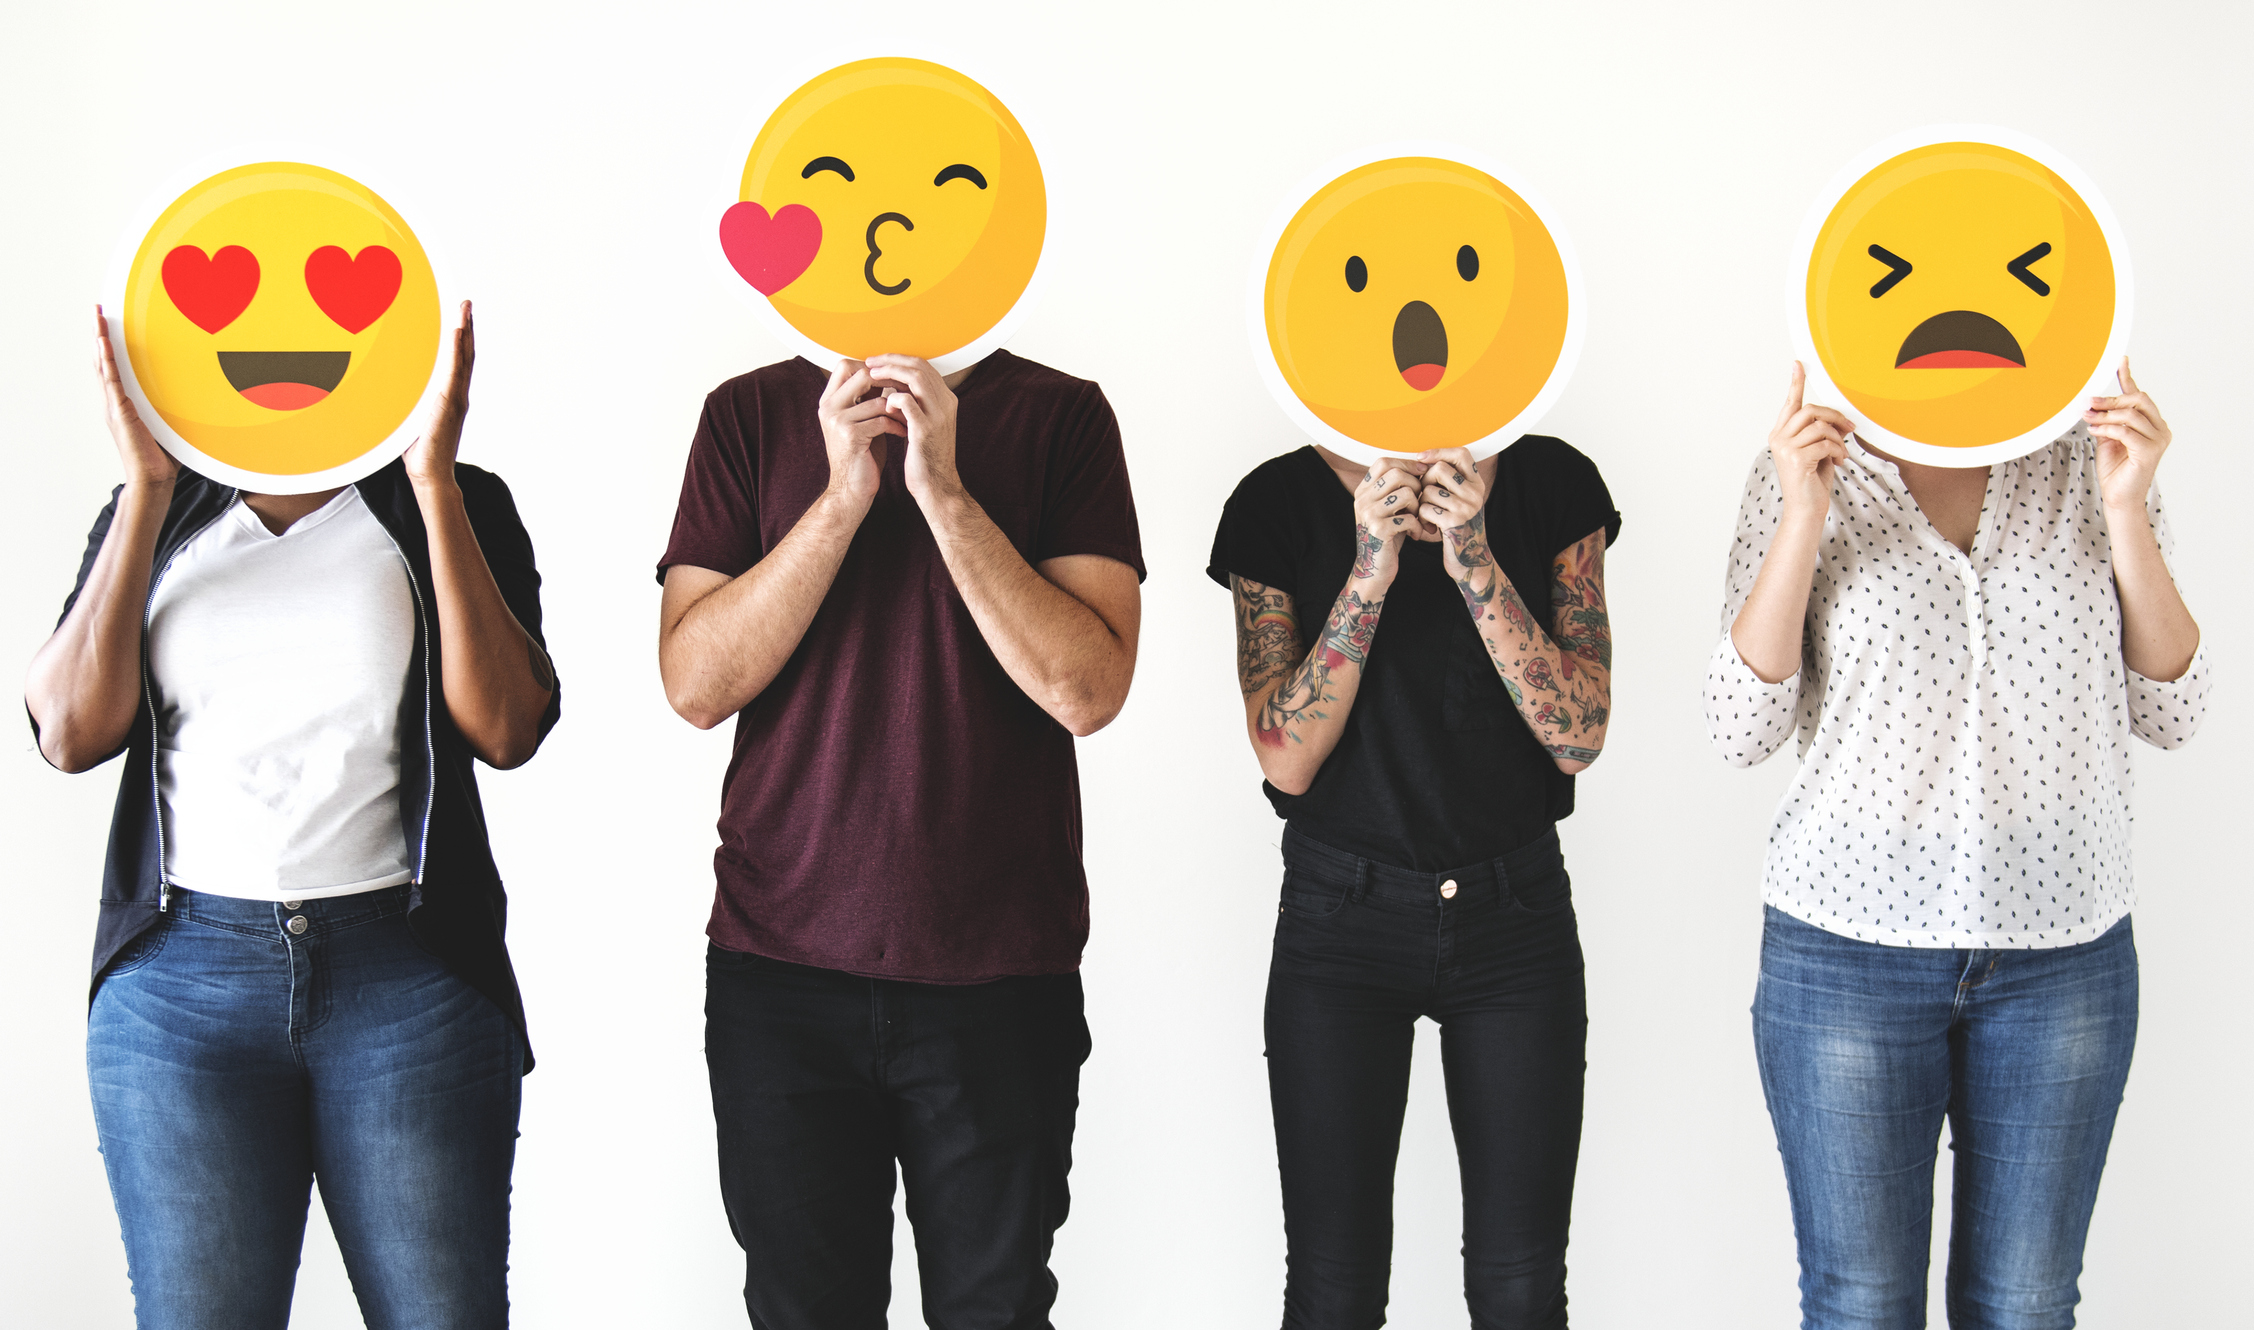 How do Linguists Feel About Emojis?